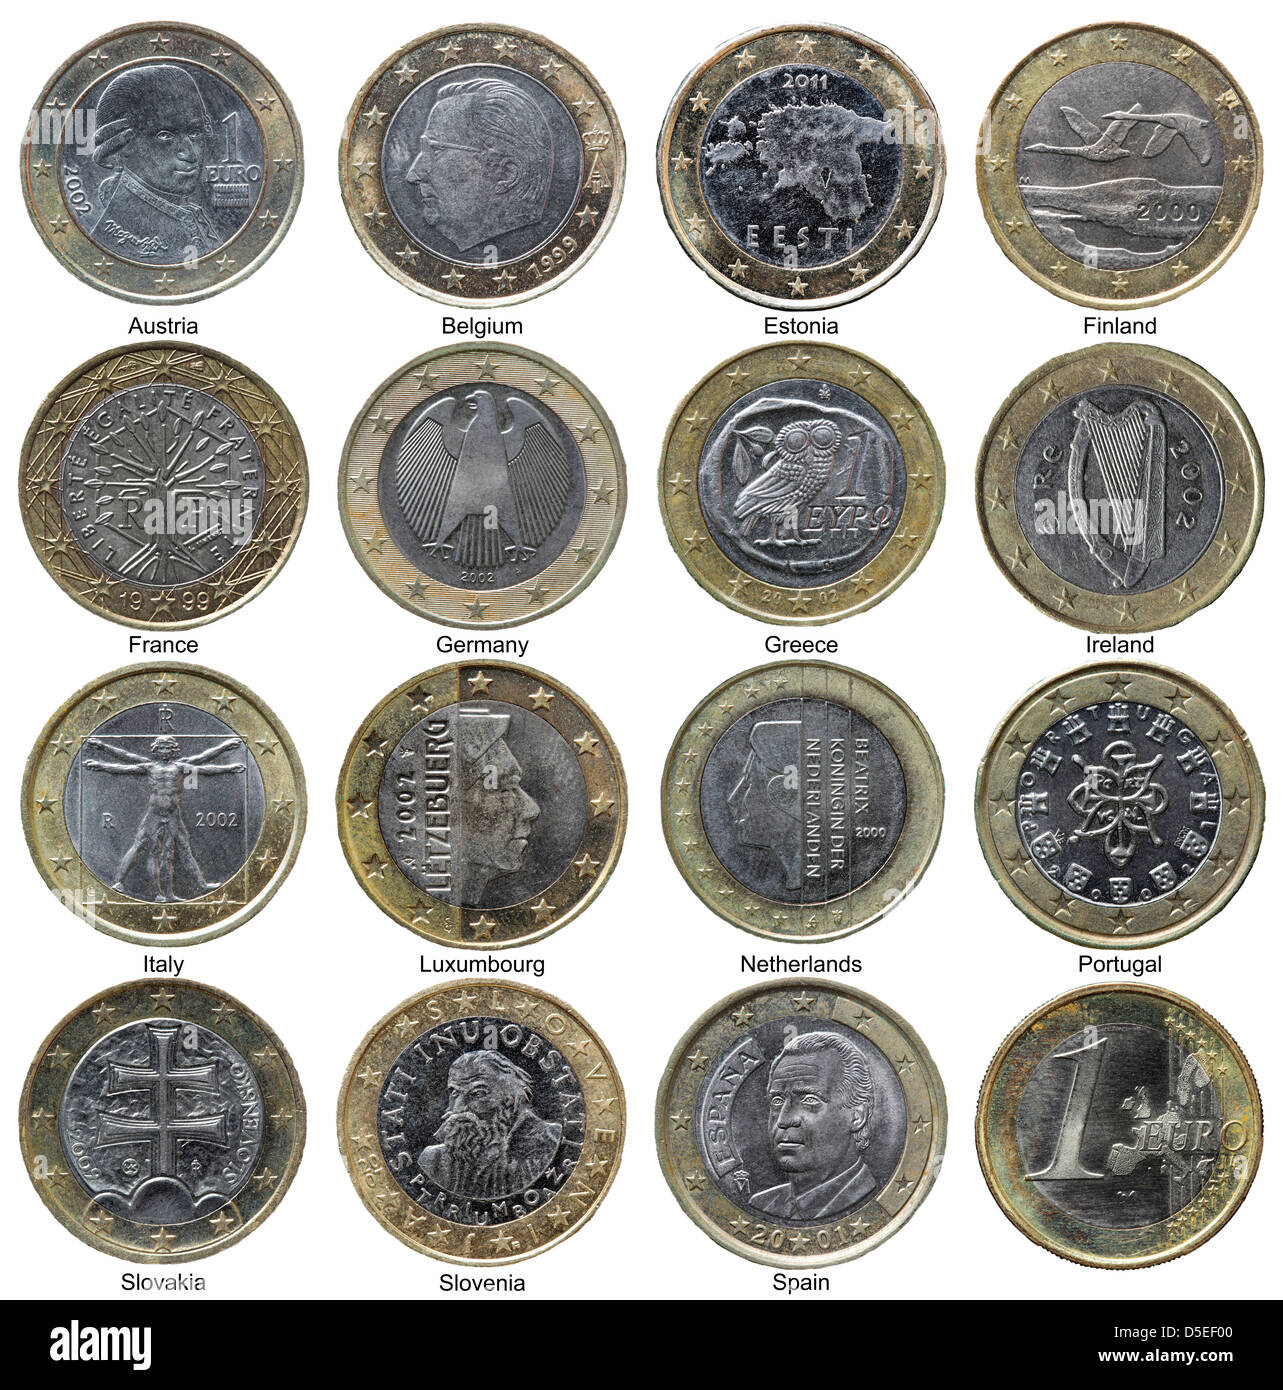 Set Of 1 Euro Coins From Different European Countries  On White Stock Photo